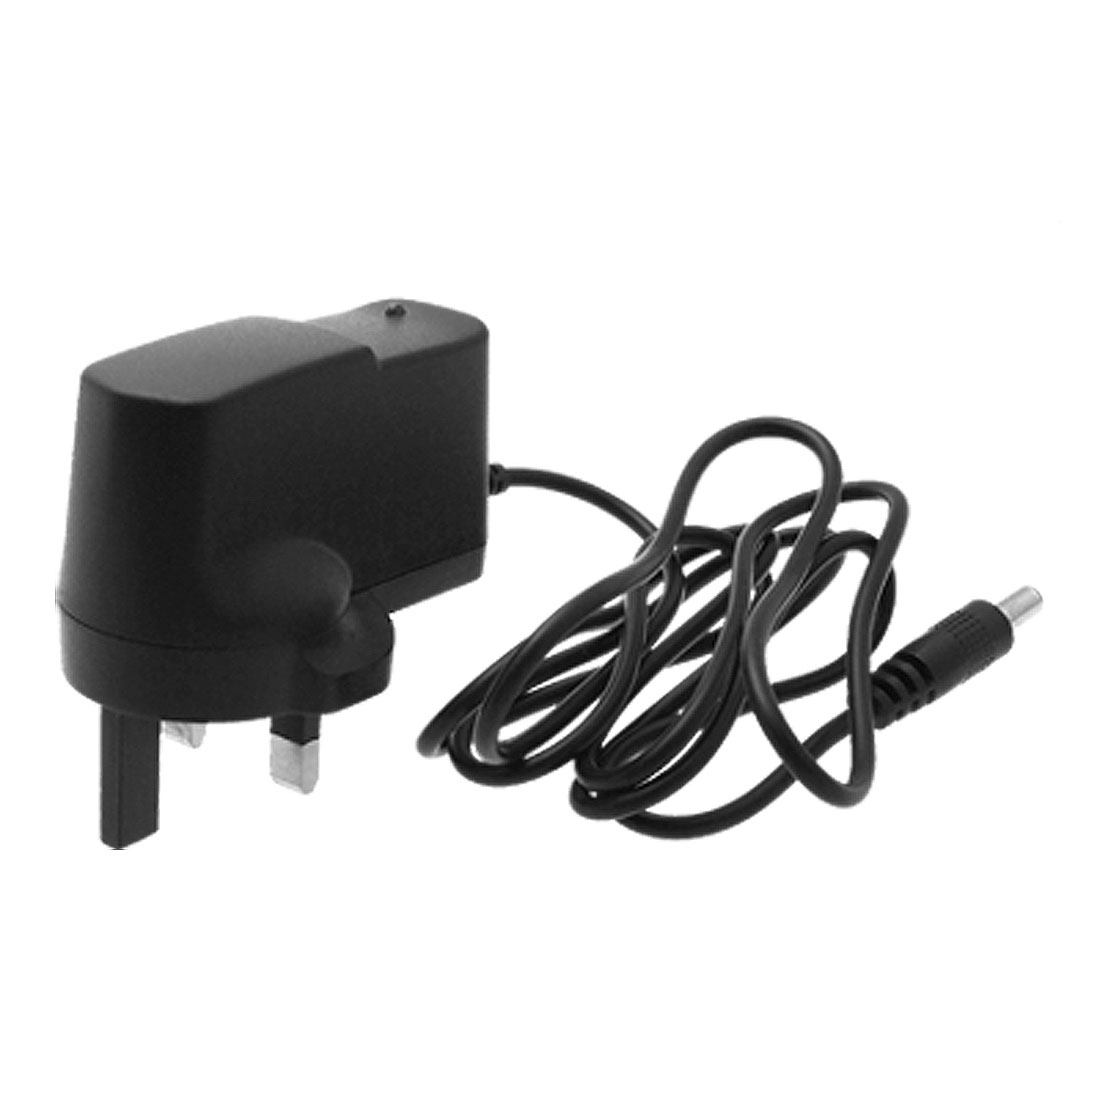 UK Plug 100V-240V Power Supply 12V 1A Charger Connector for CCTV Camera